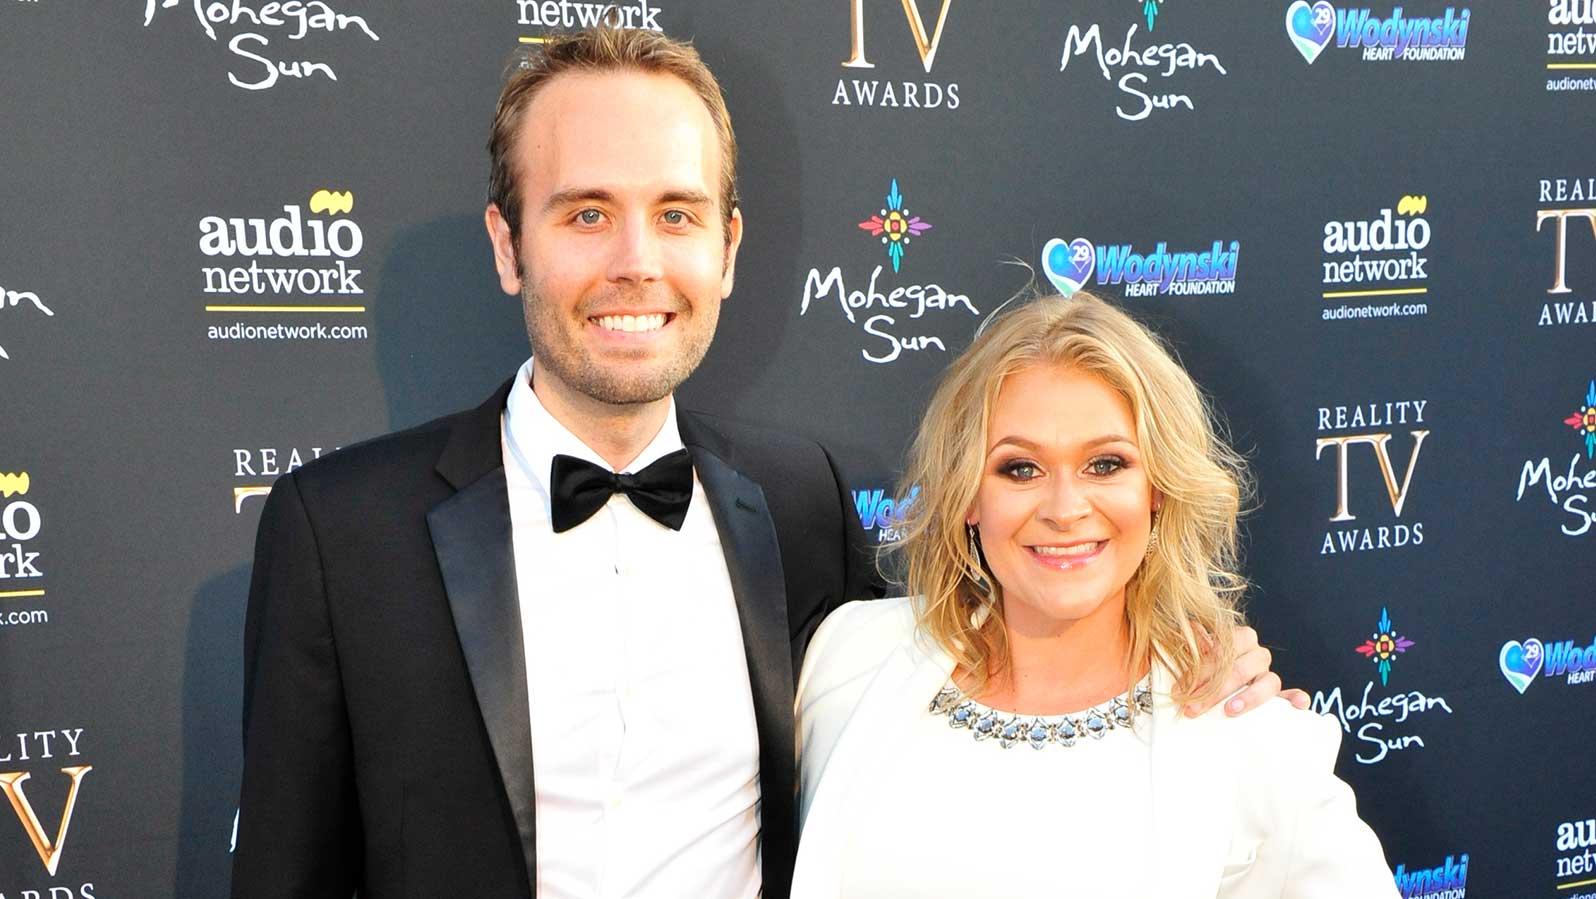 Reality Television Awards founders